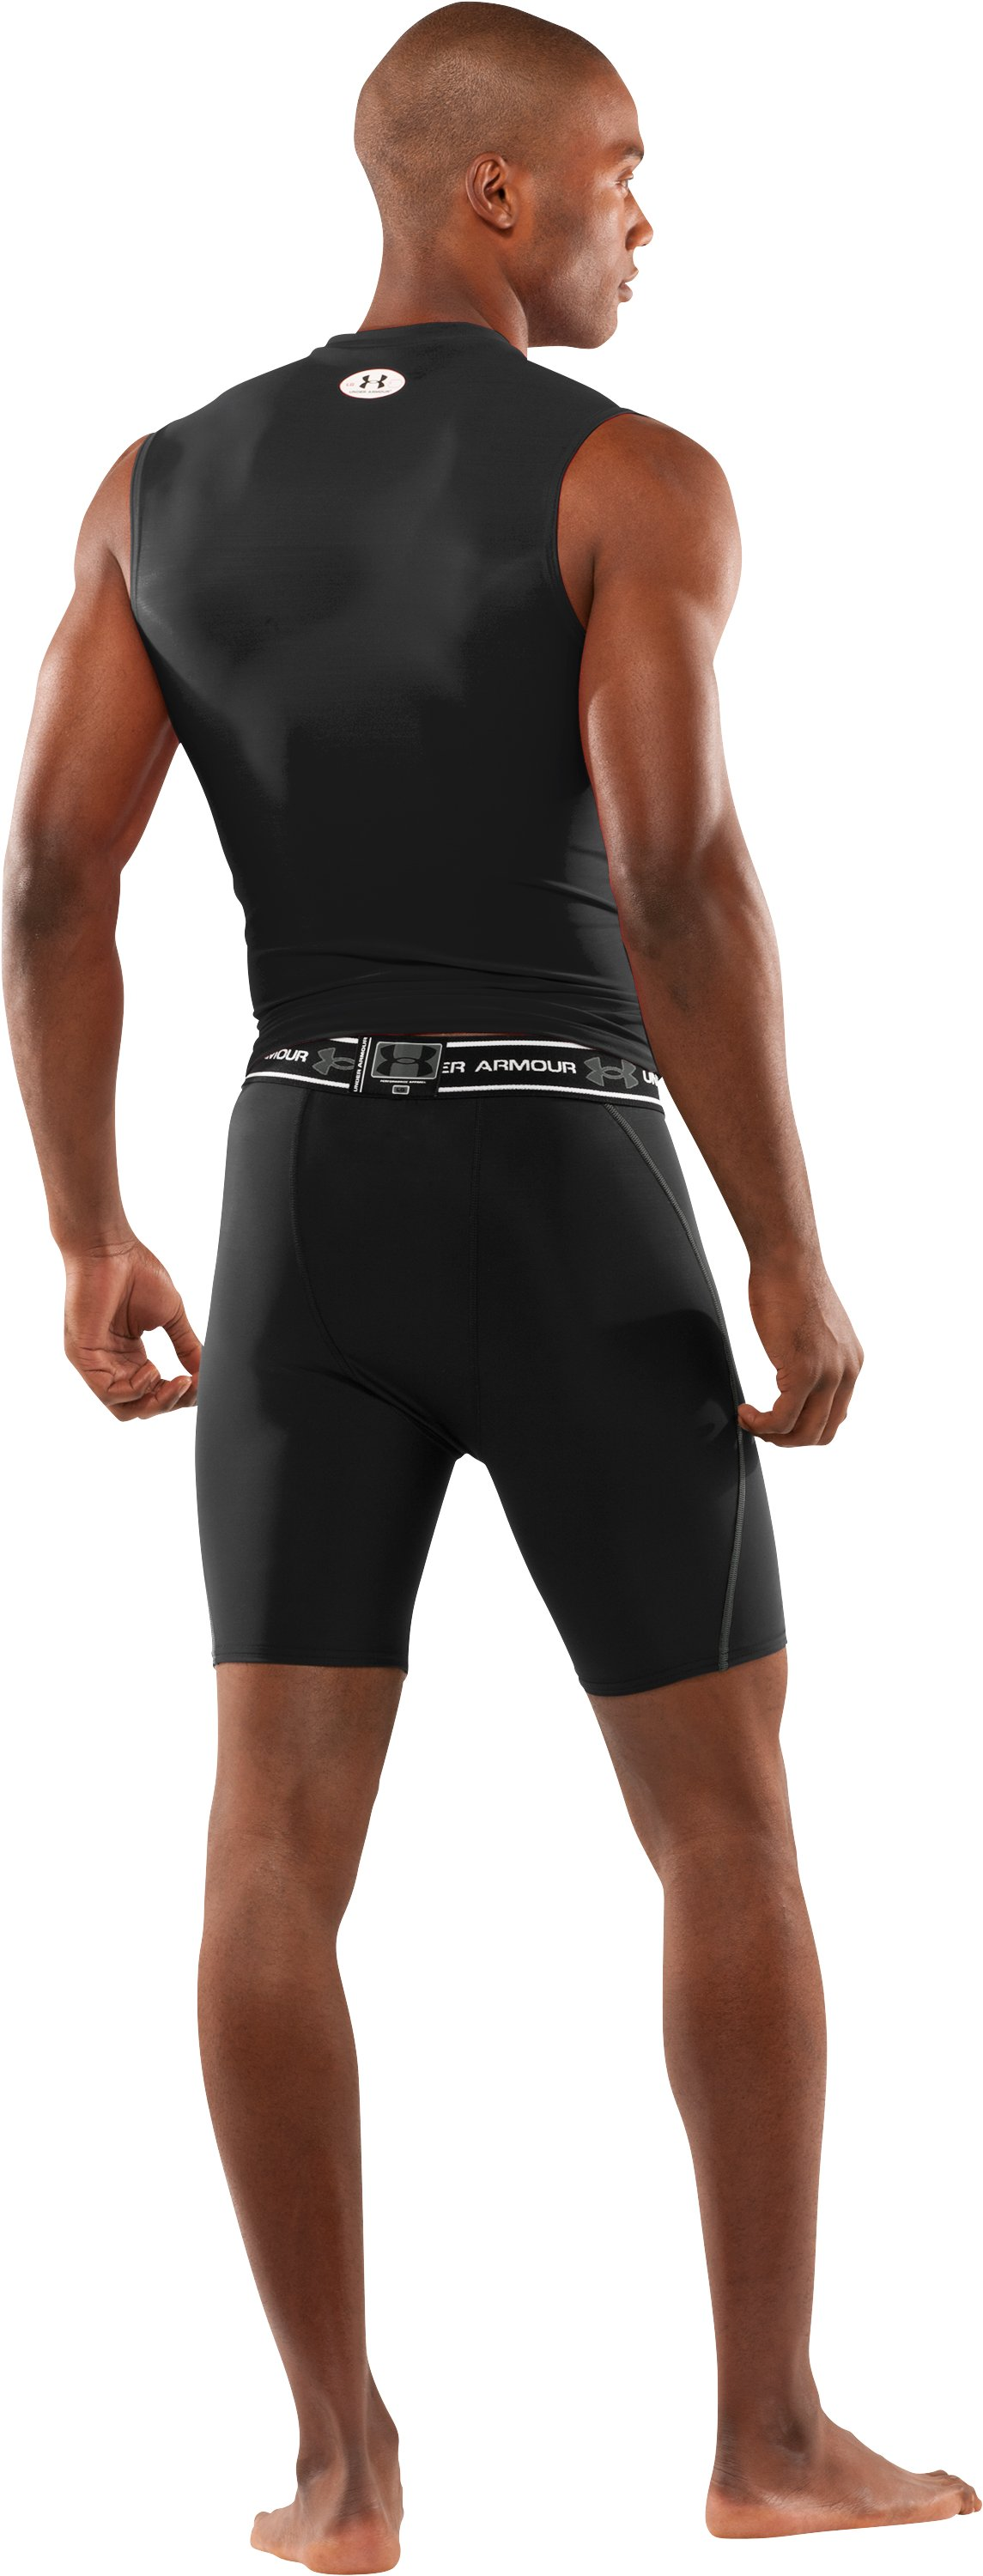 "Men's Ventilated 7"" Compression Shorts, Black , Back"